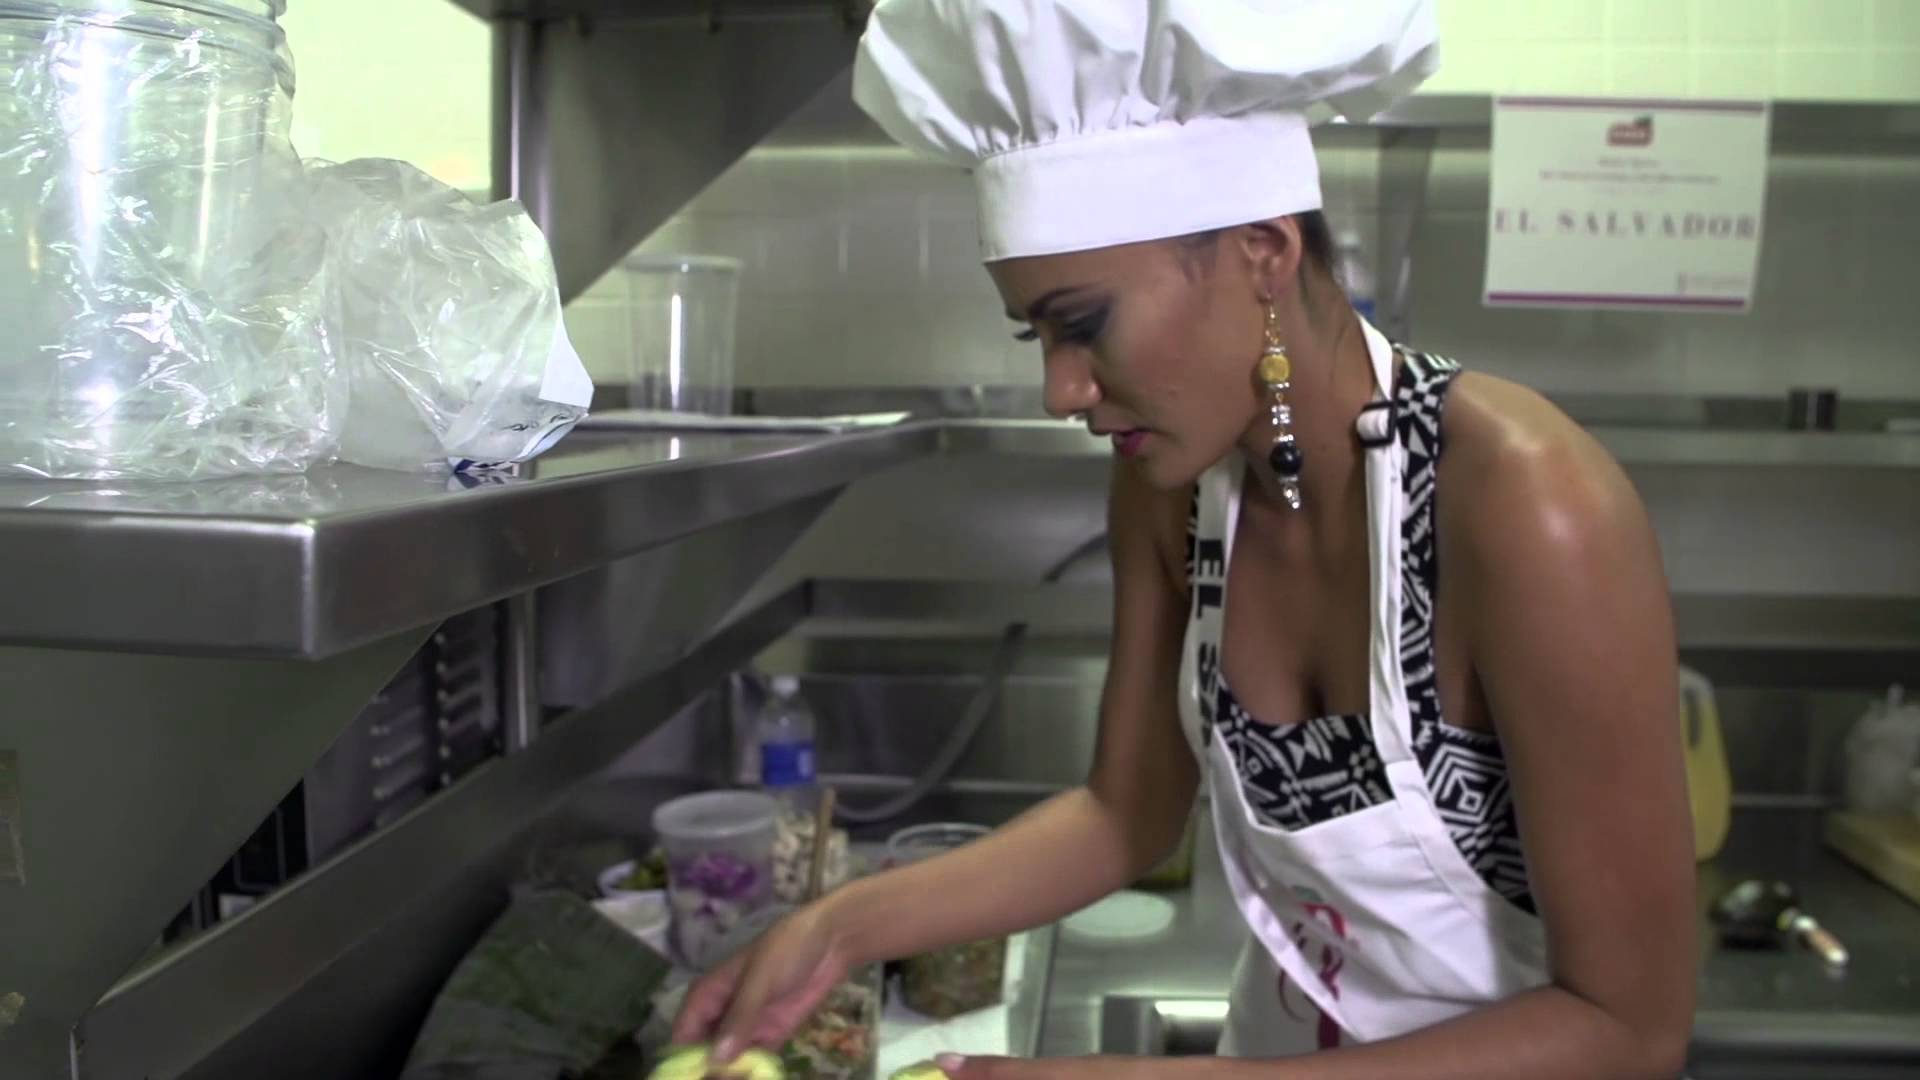 Miss Universe pageant sees the girls in the kitchen